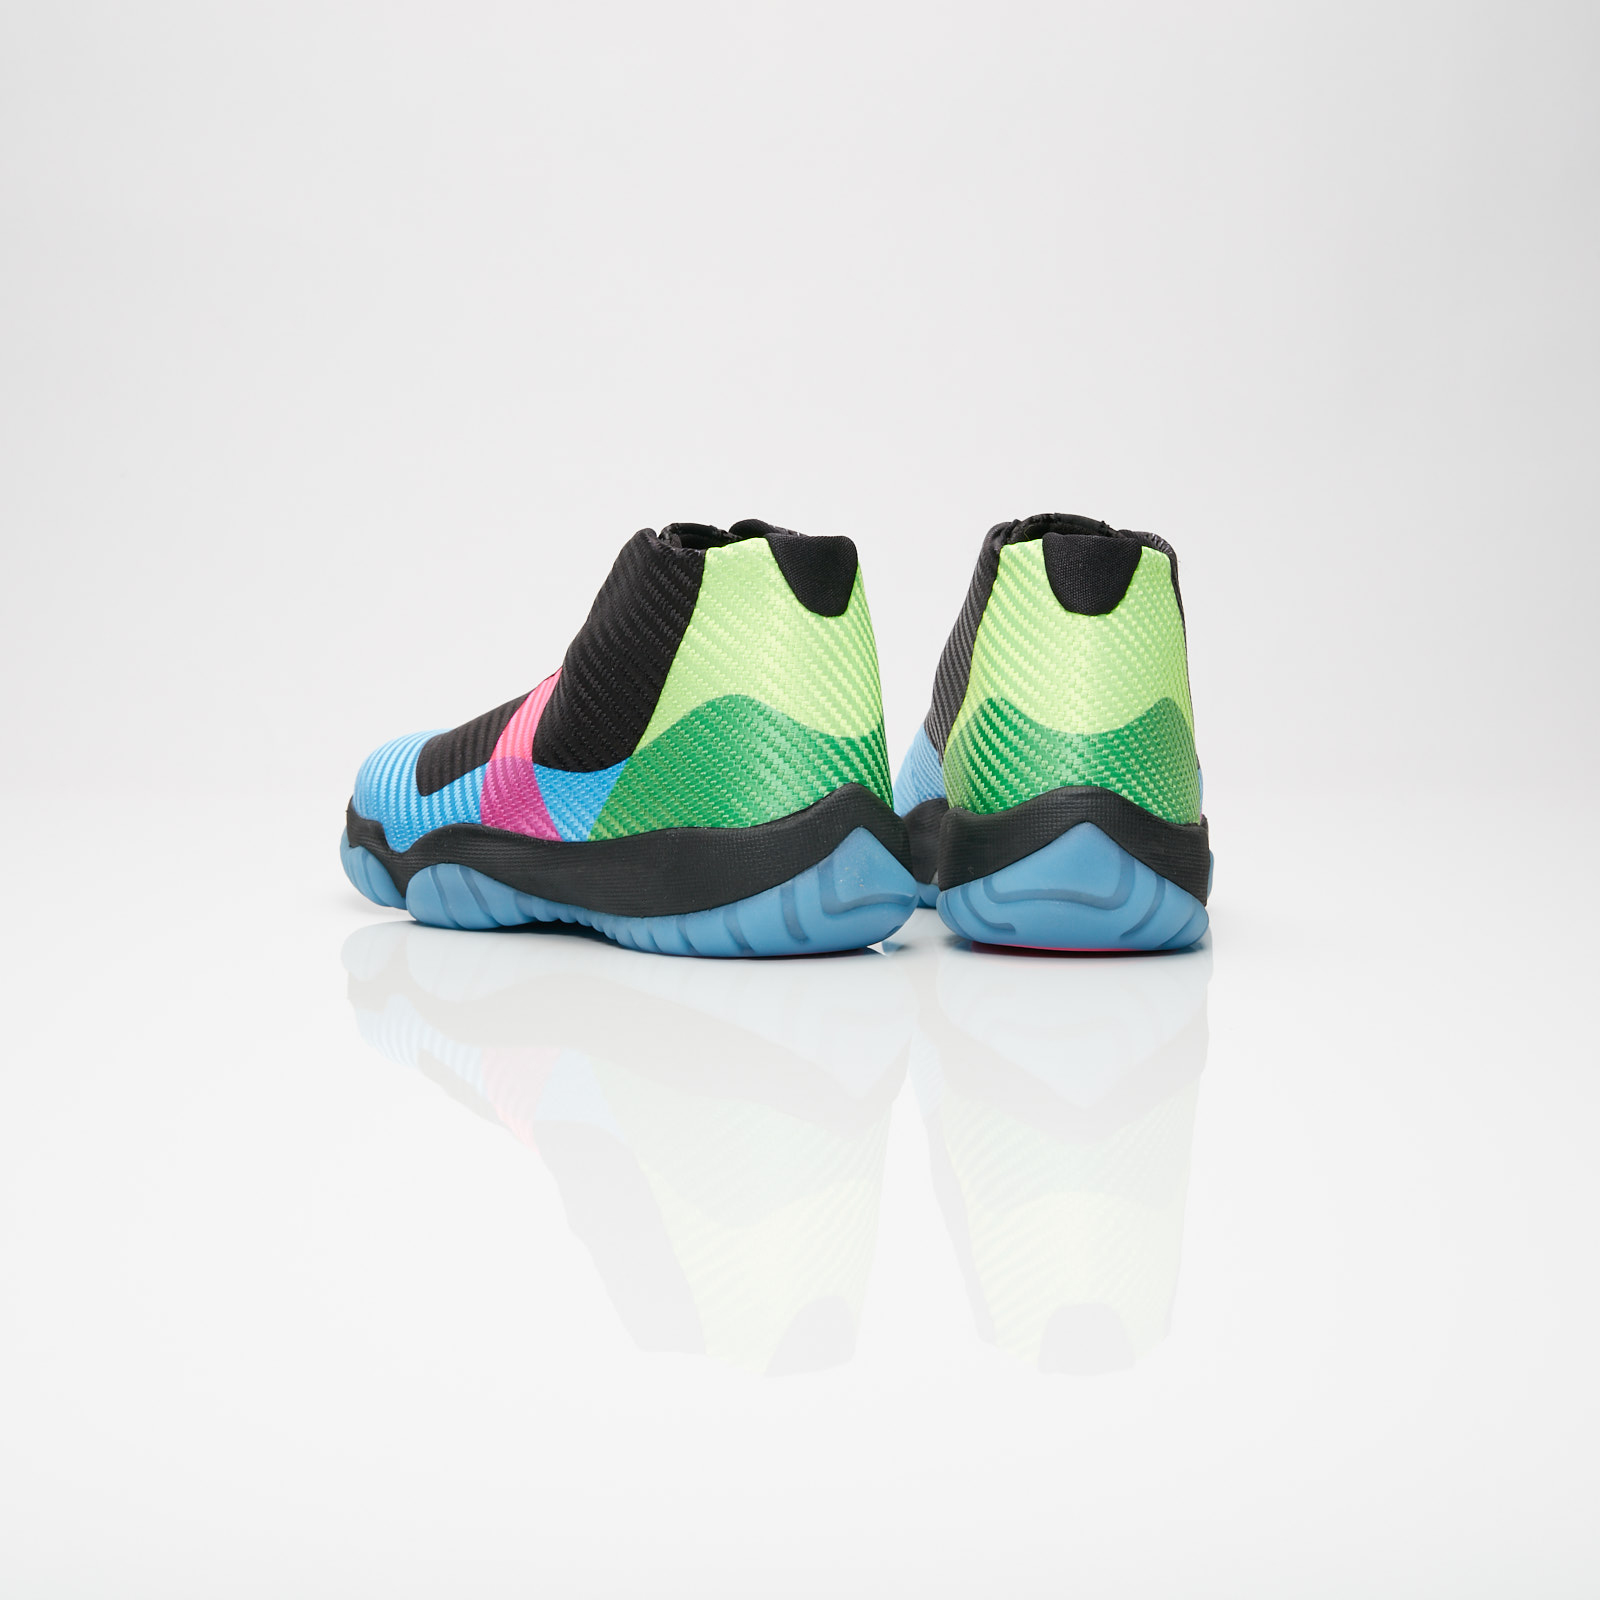 24c19e05819 Jordan Brand Air Jordan Future Q54 GS - At9192-001 - Sneakersnstuff |  sneakers & streetwear online since 1999